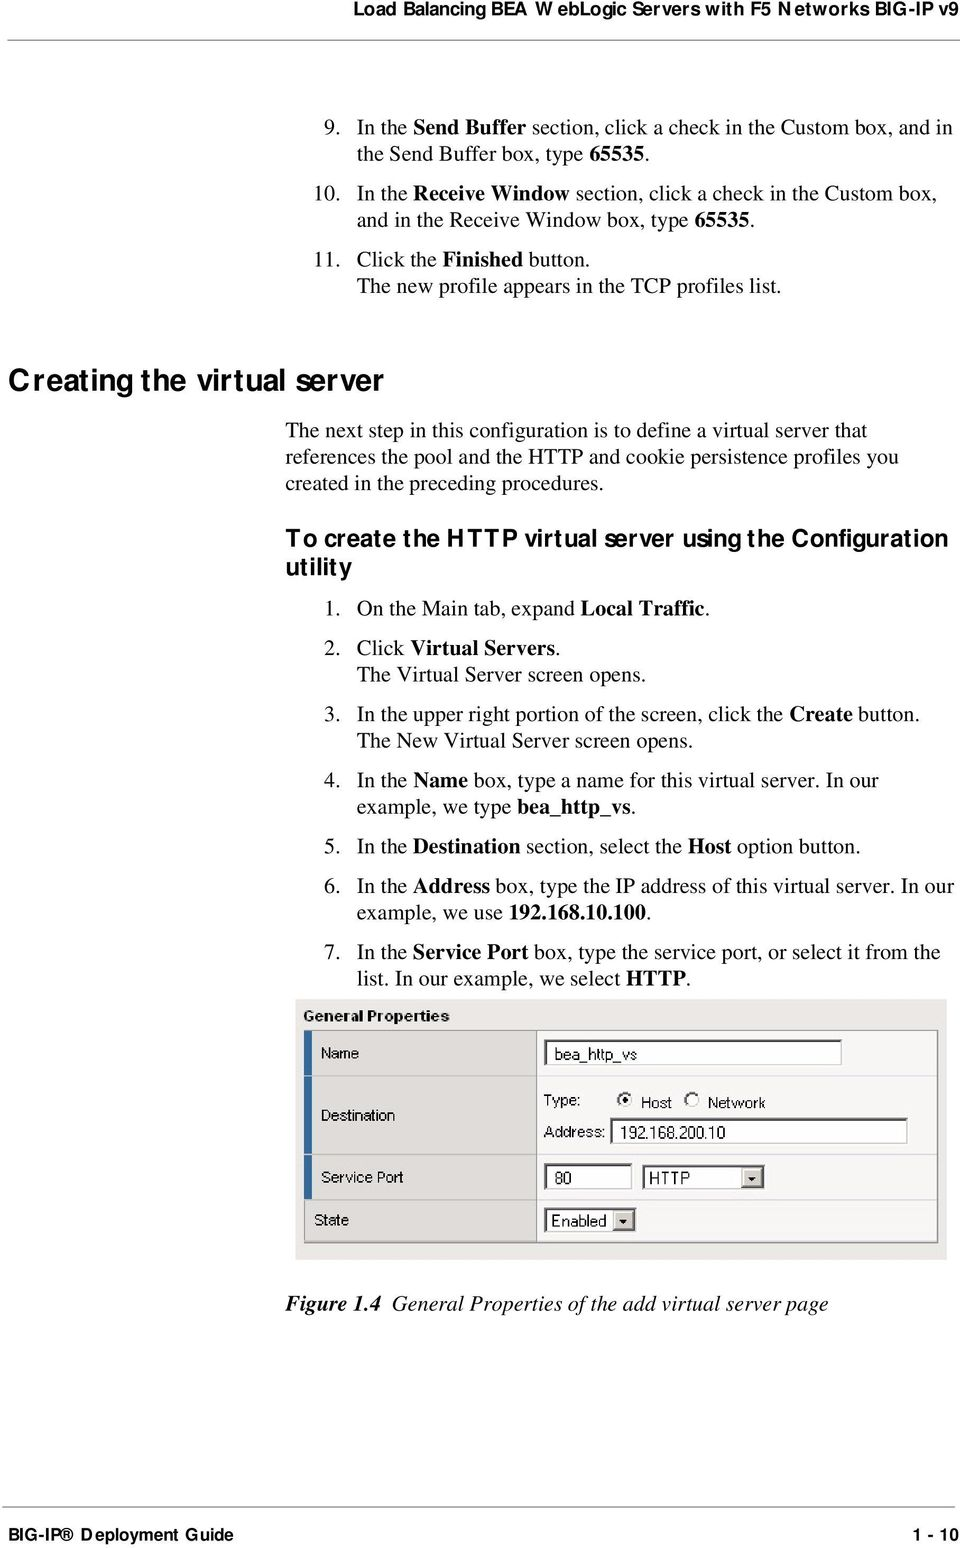 Creating the virtual server The next step in this configuration is to define a virtual server that references the pool and the HTTP and cookie persistence profiles you created in the preceding